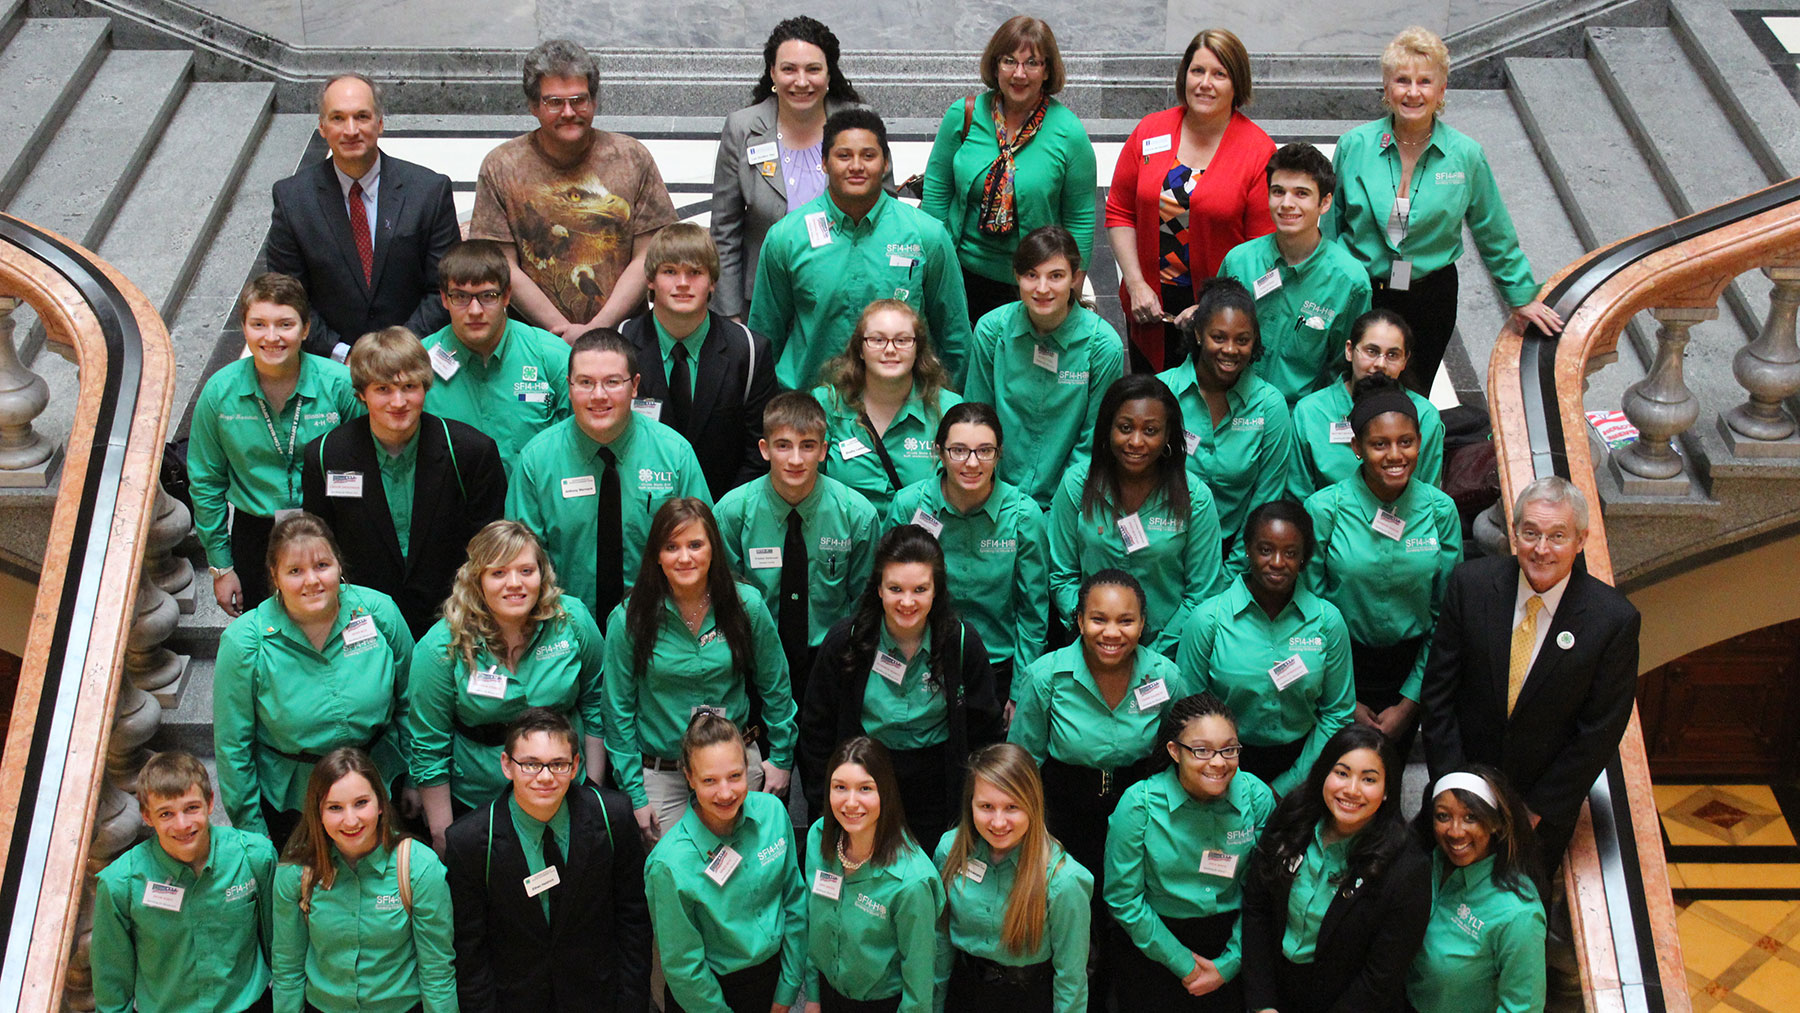 image of 4-H students in the illinois capitol